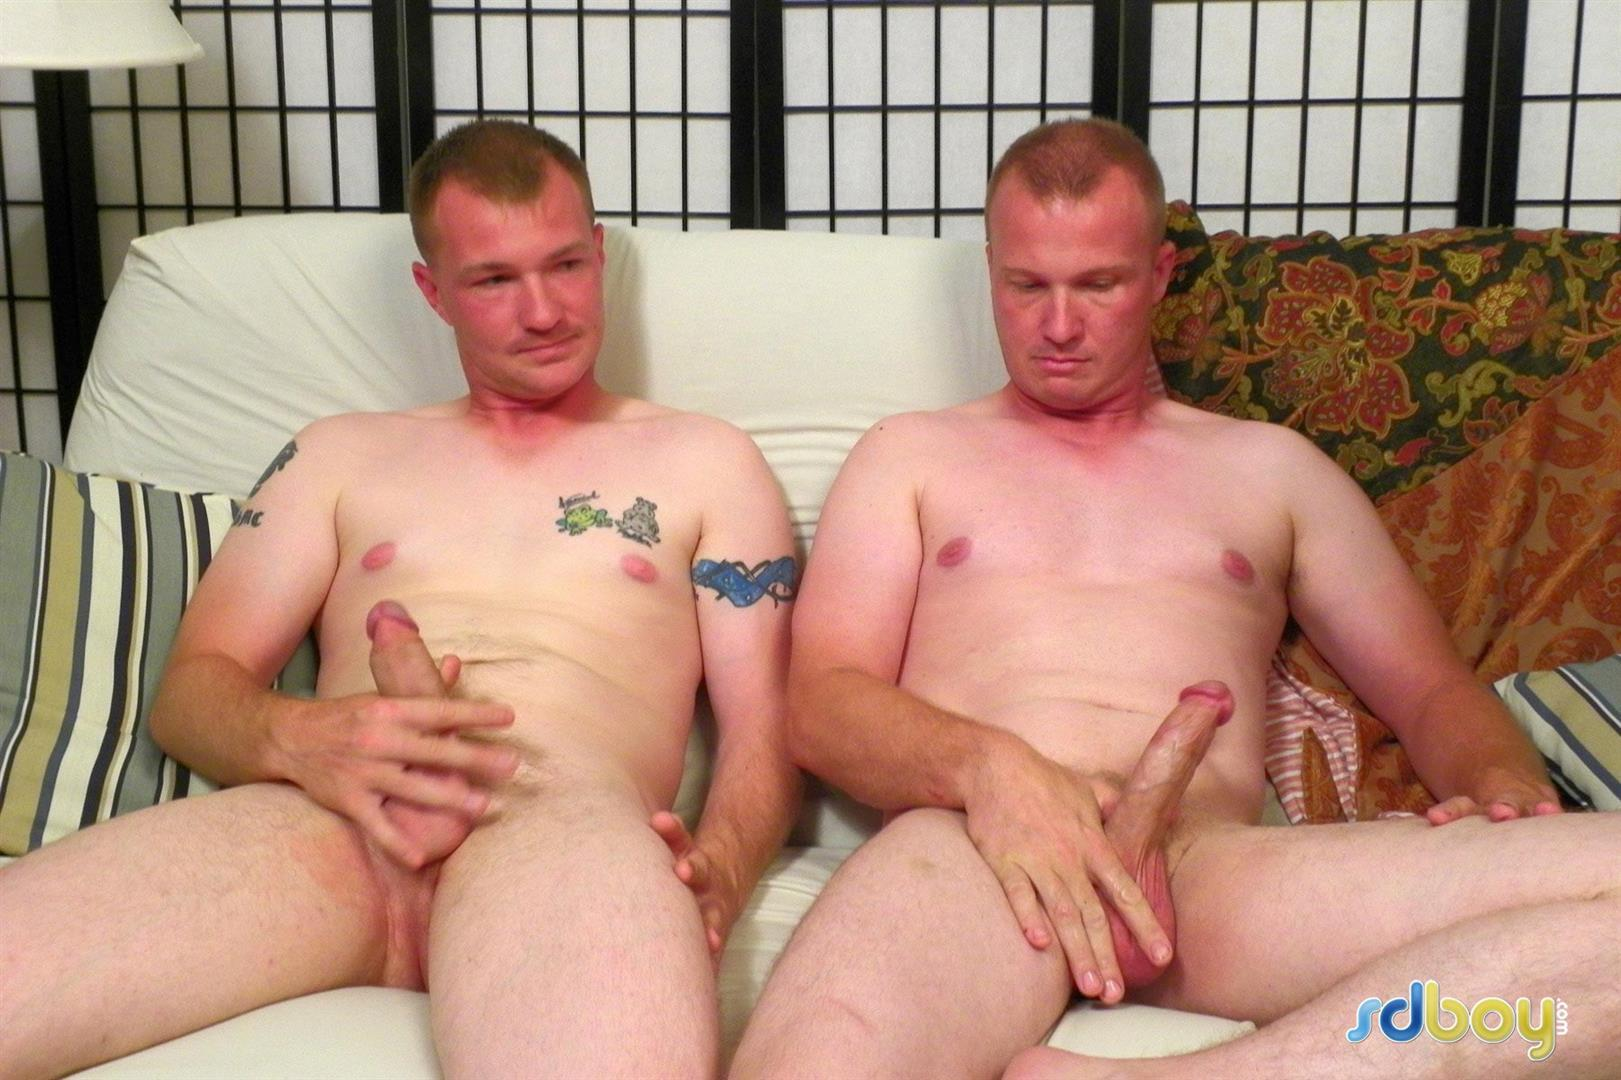 SD-Boys-Marines-Phillips-Brothers-Preston-Phillips-and-Justin-Phillips-Marine-Brothers-Jerking-Off-Amateur-Gay-Porn-23 Real Life Active Duty Marine Brothers Comparing Cocks & Jerking Off